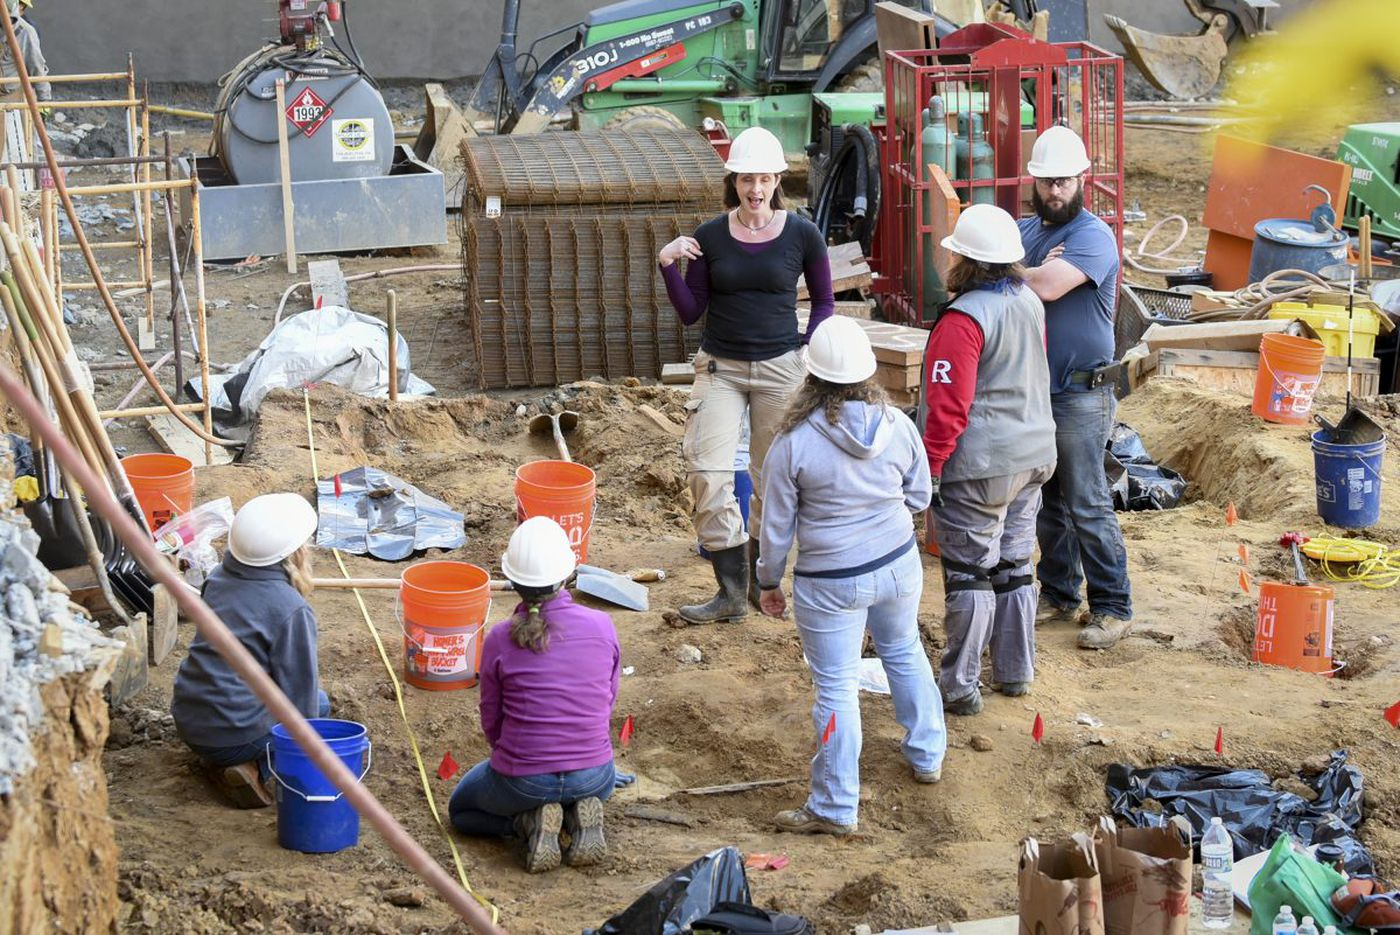 Bones from 407 human skeletons tallied in court report on Arch Street building site